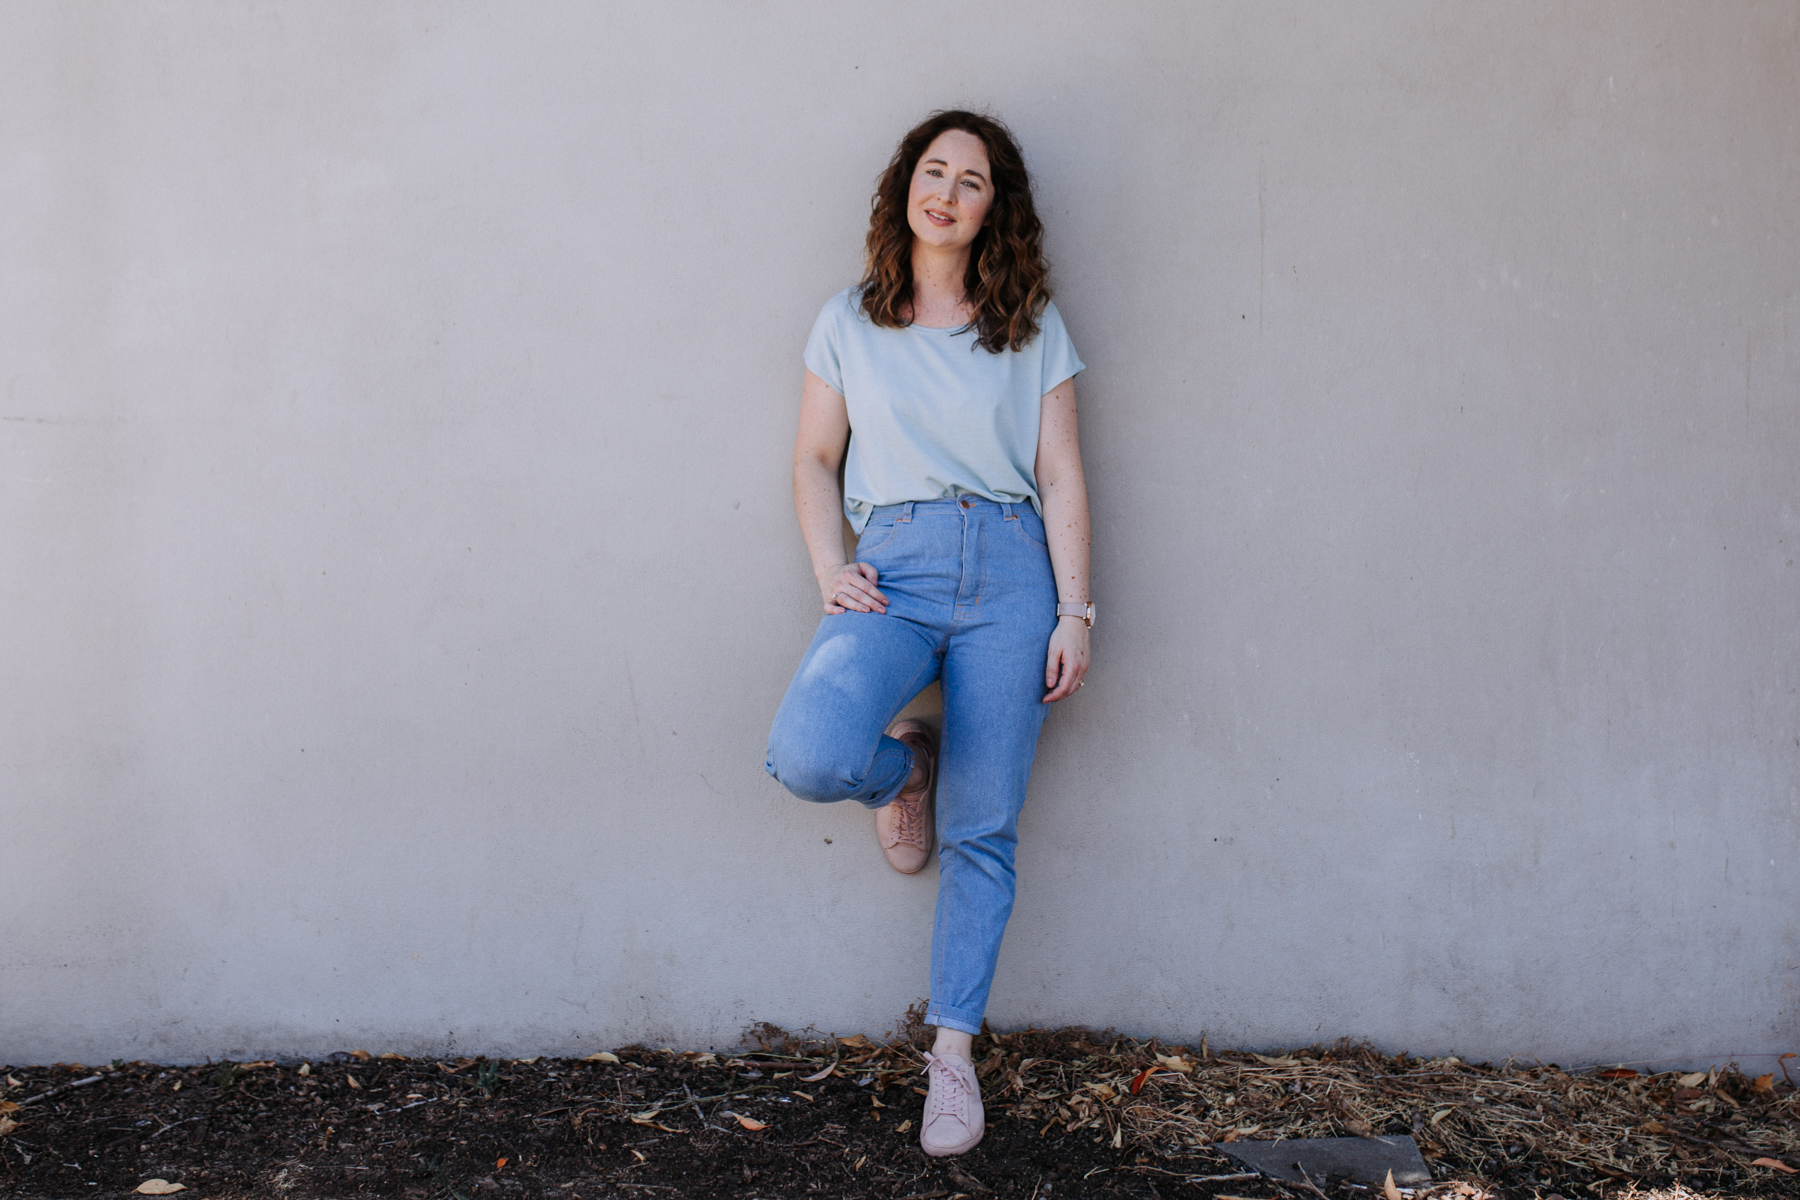 Dawn tapered leg jeans with embroidered back pocket + merino Jarrah tee // Megan Nielsen Design Diary